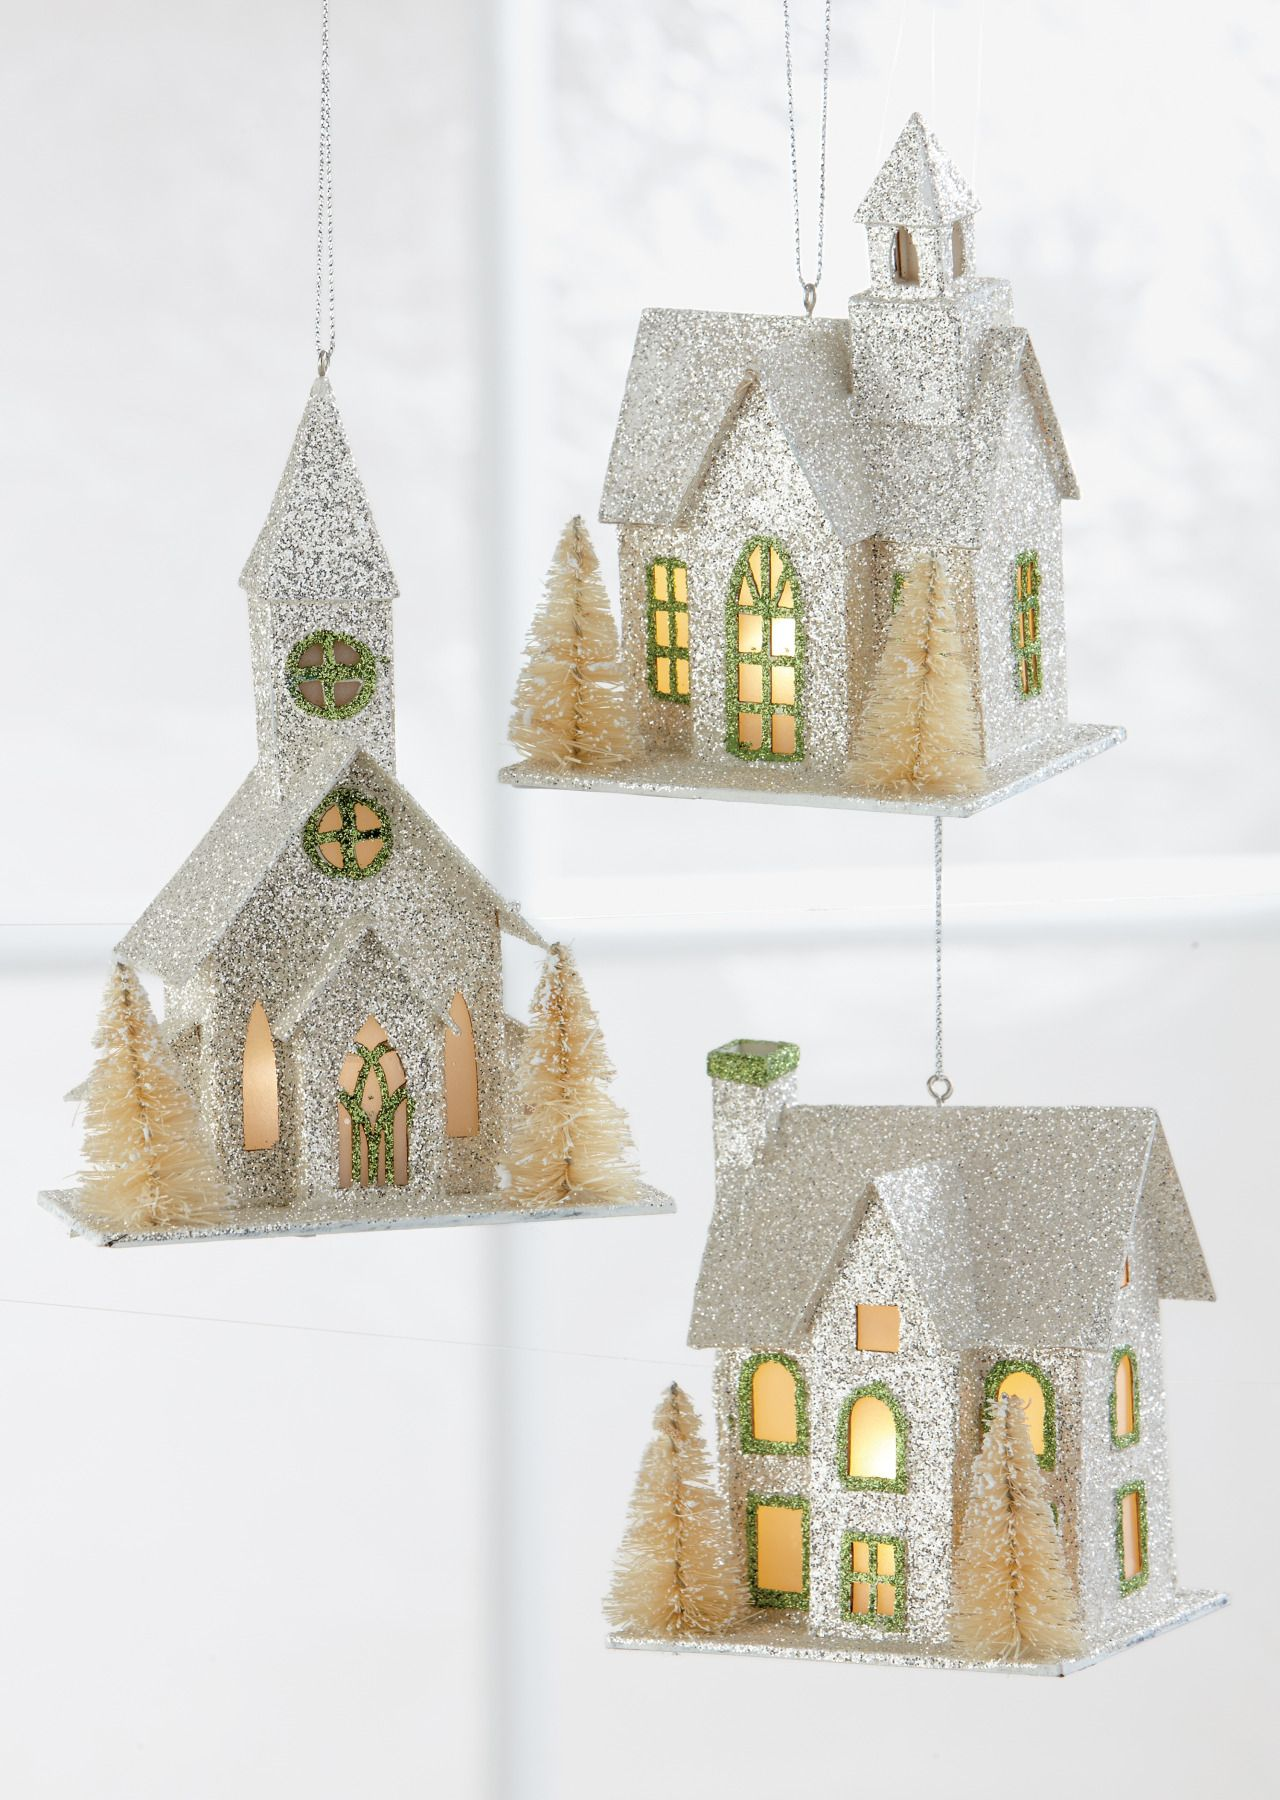 Bristle brush ornaments - Full Of Lovely Glittery Details These Light Up Ornament Feature Tiny Golden Bristle Brush